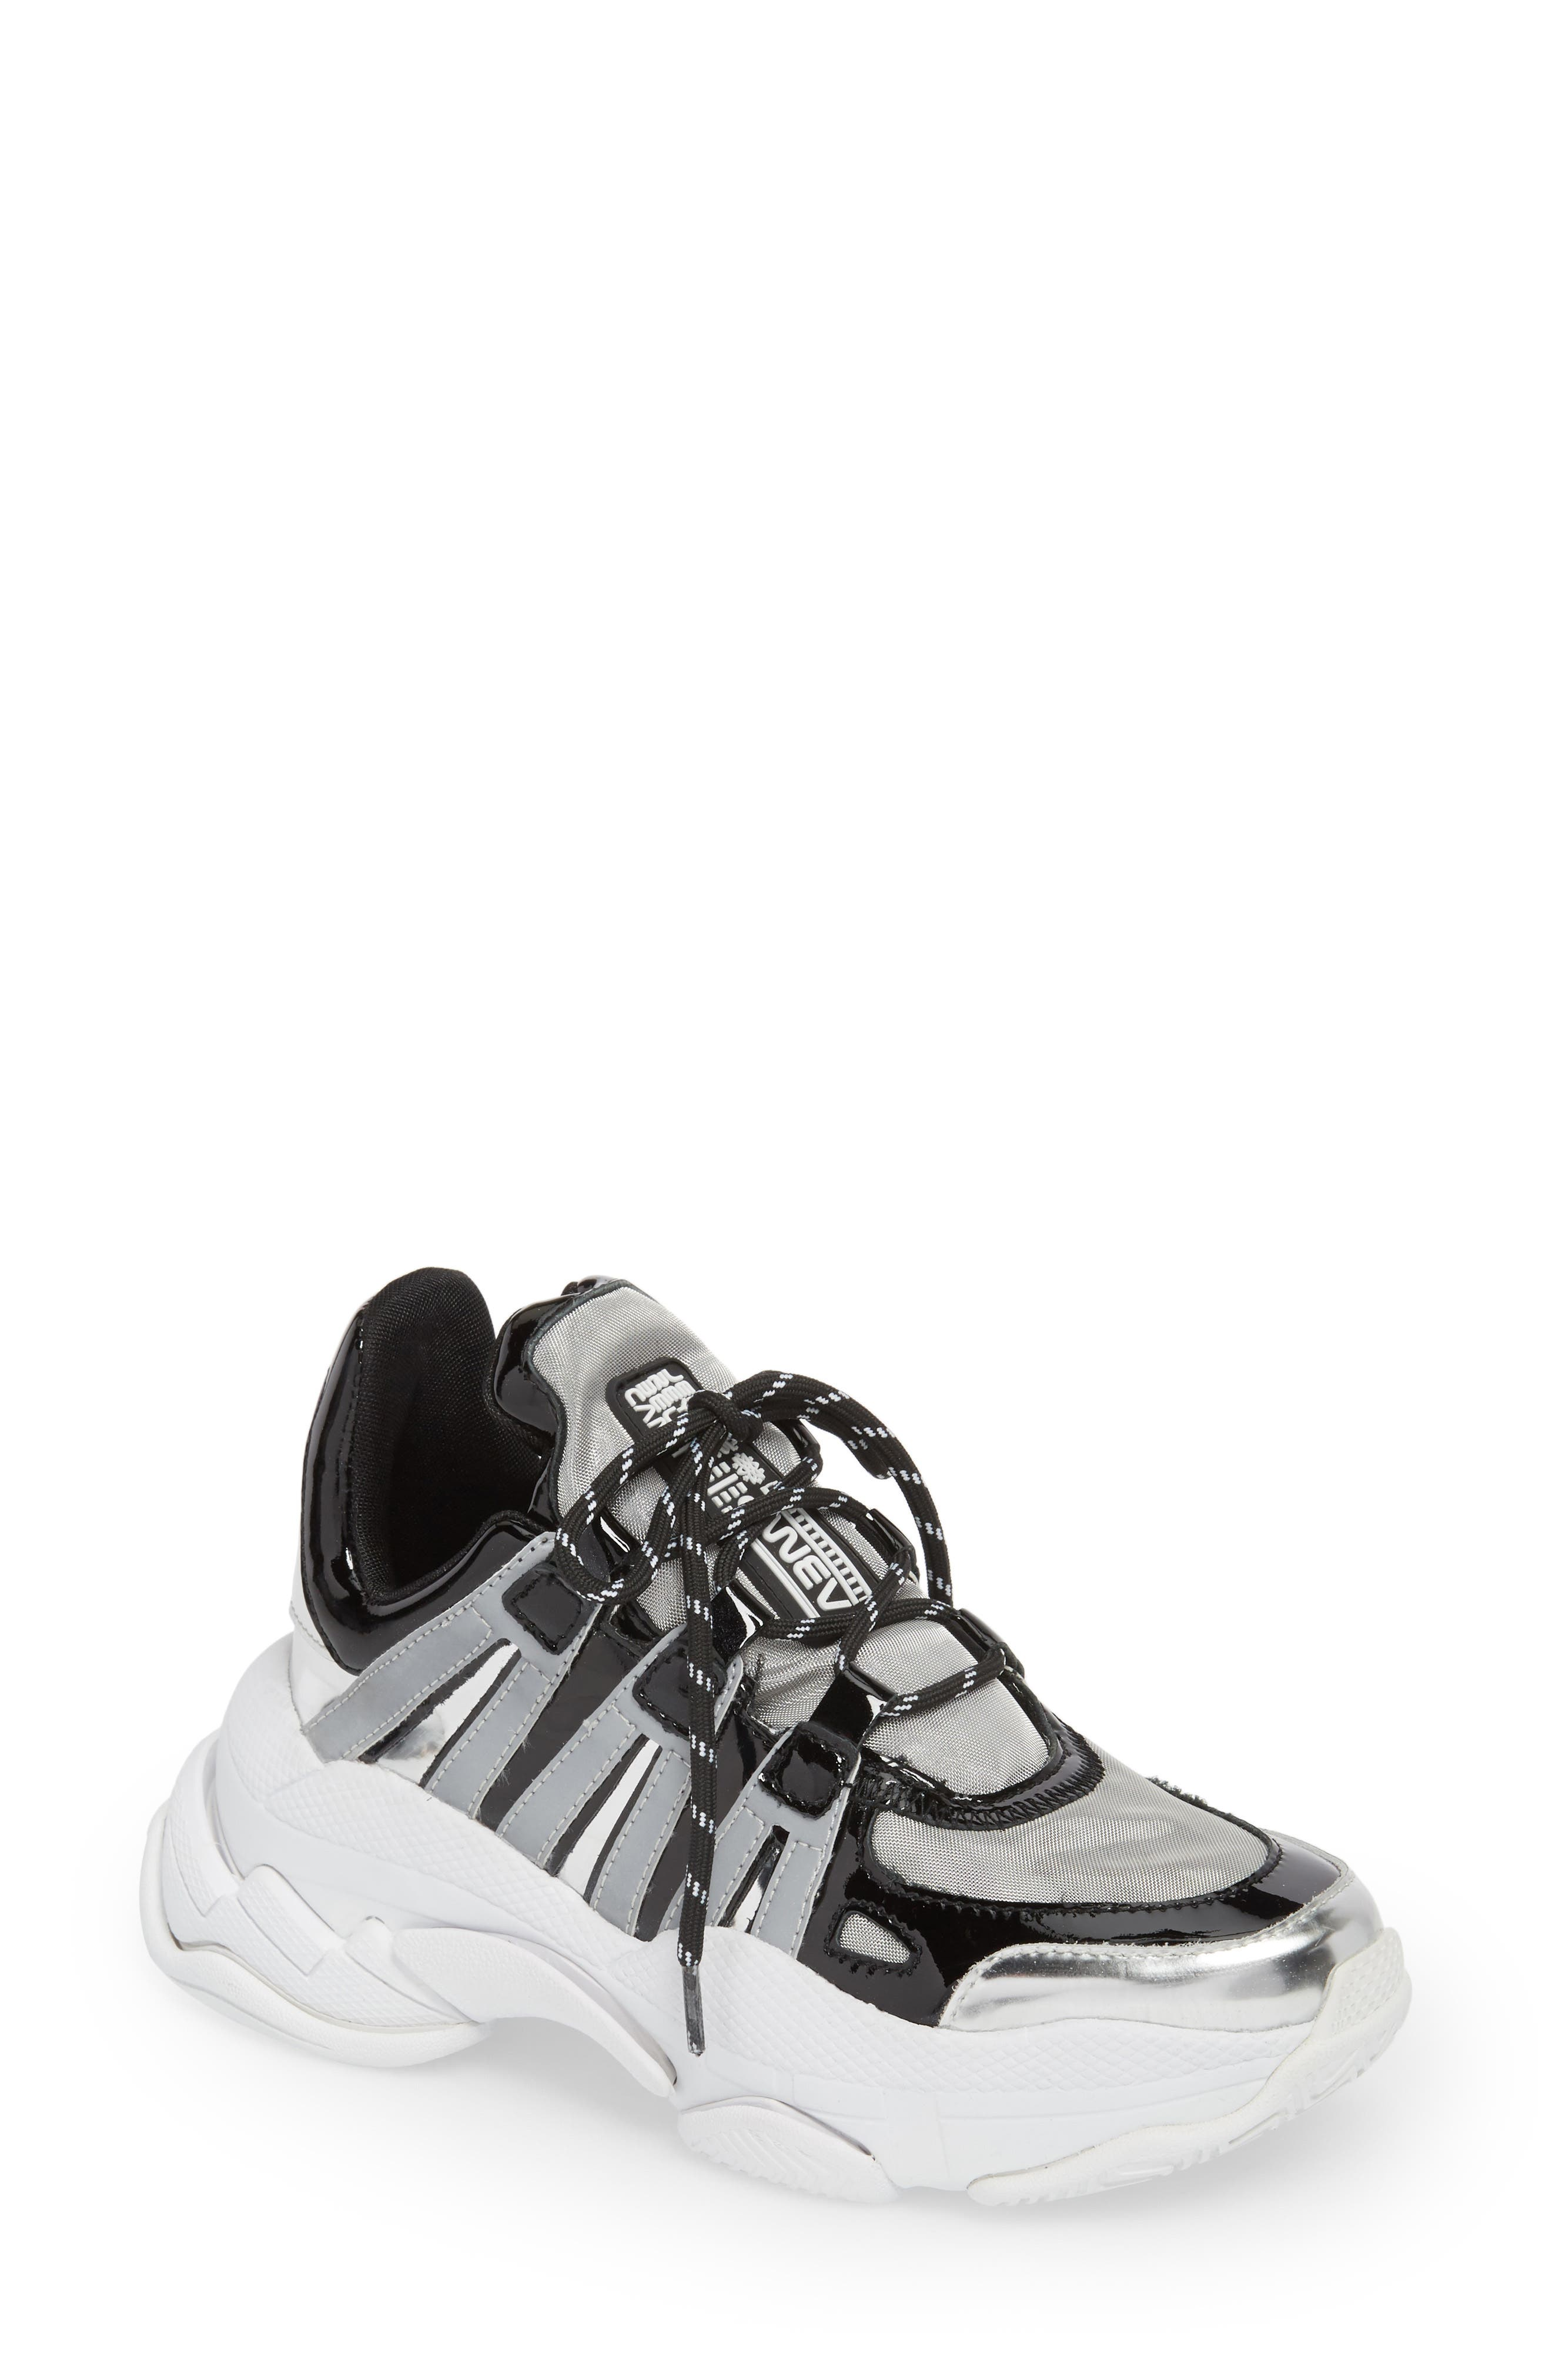 WiFi Sneaker,                         Main,                         color, SILVER MULTI